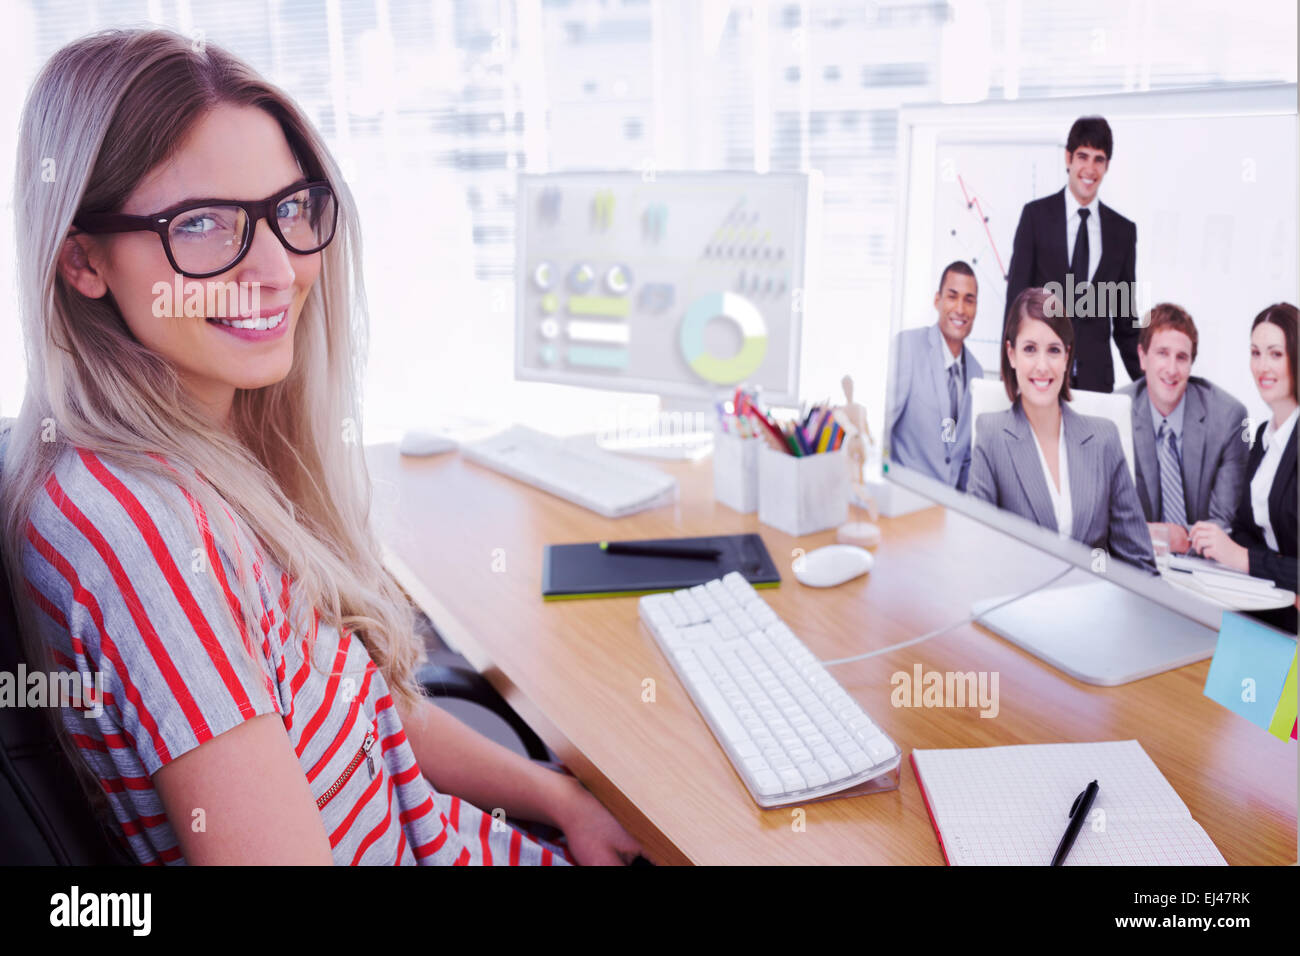 Composite image of attractive photo editor working on computer - Stock Photo